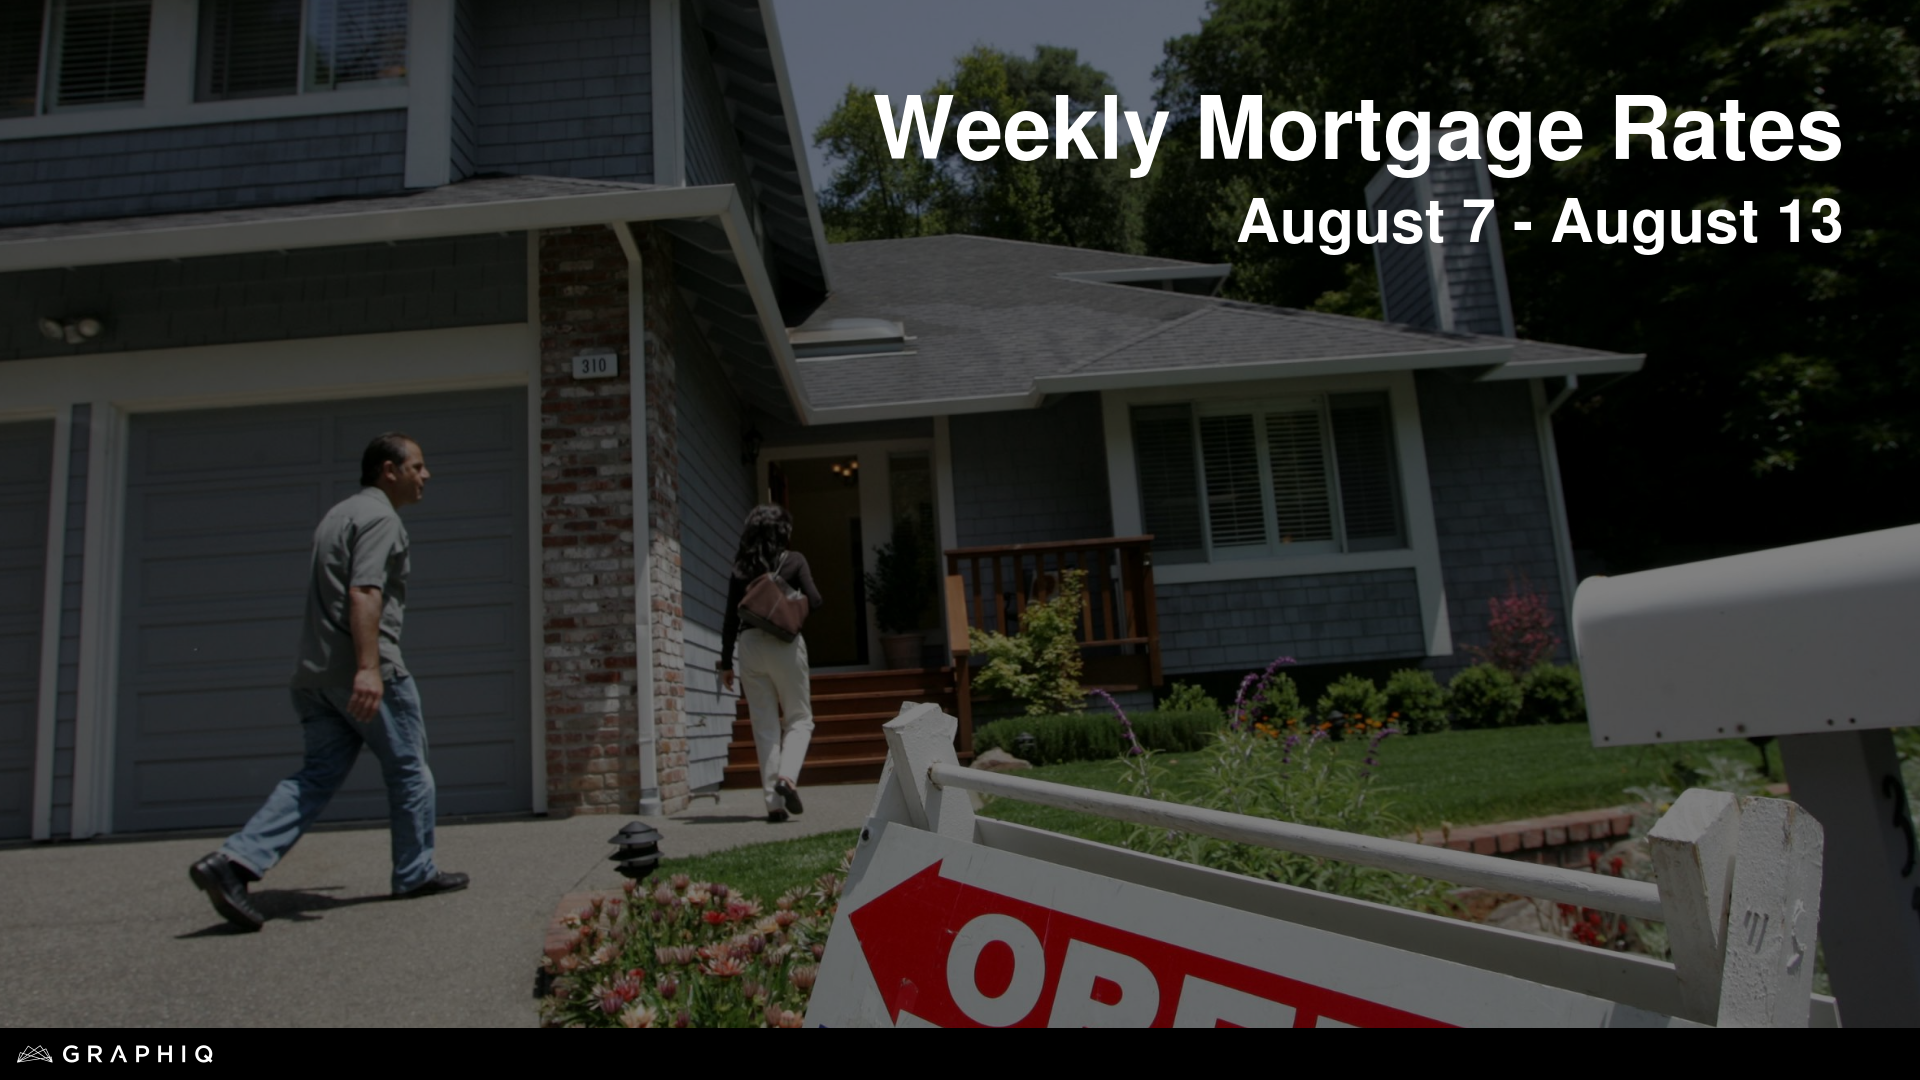 Mortgages rates remain low during late summer months